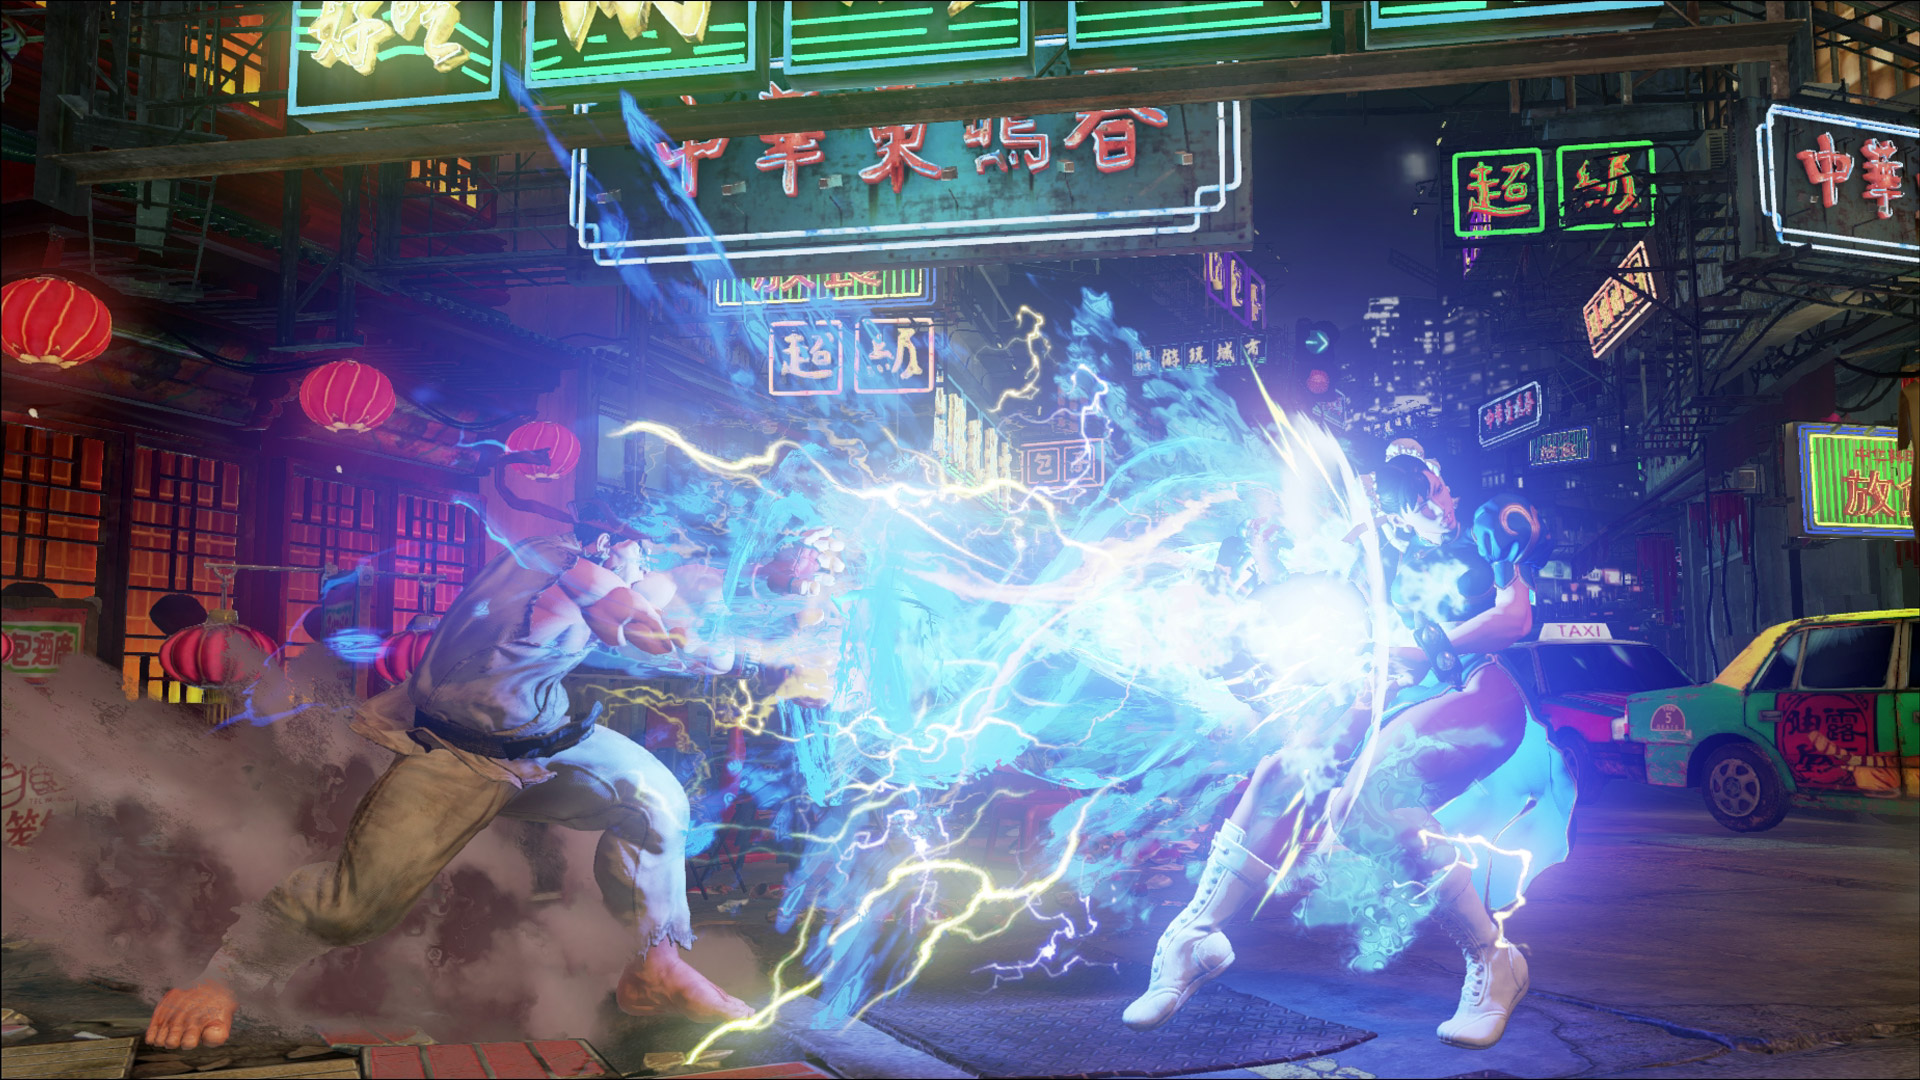 Xbox head reacts to news of Street Fighter exclusive: 'It's all part of competition'